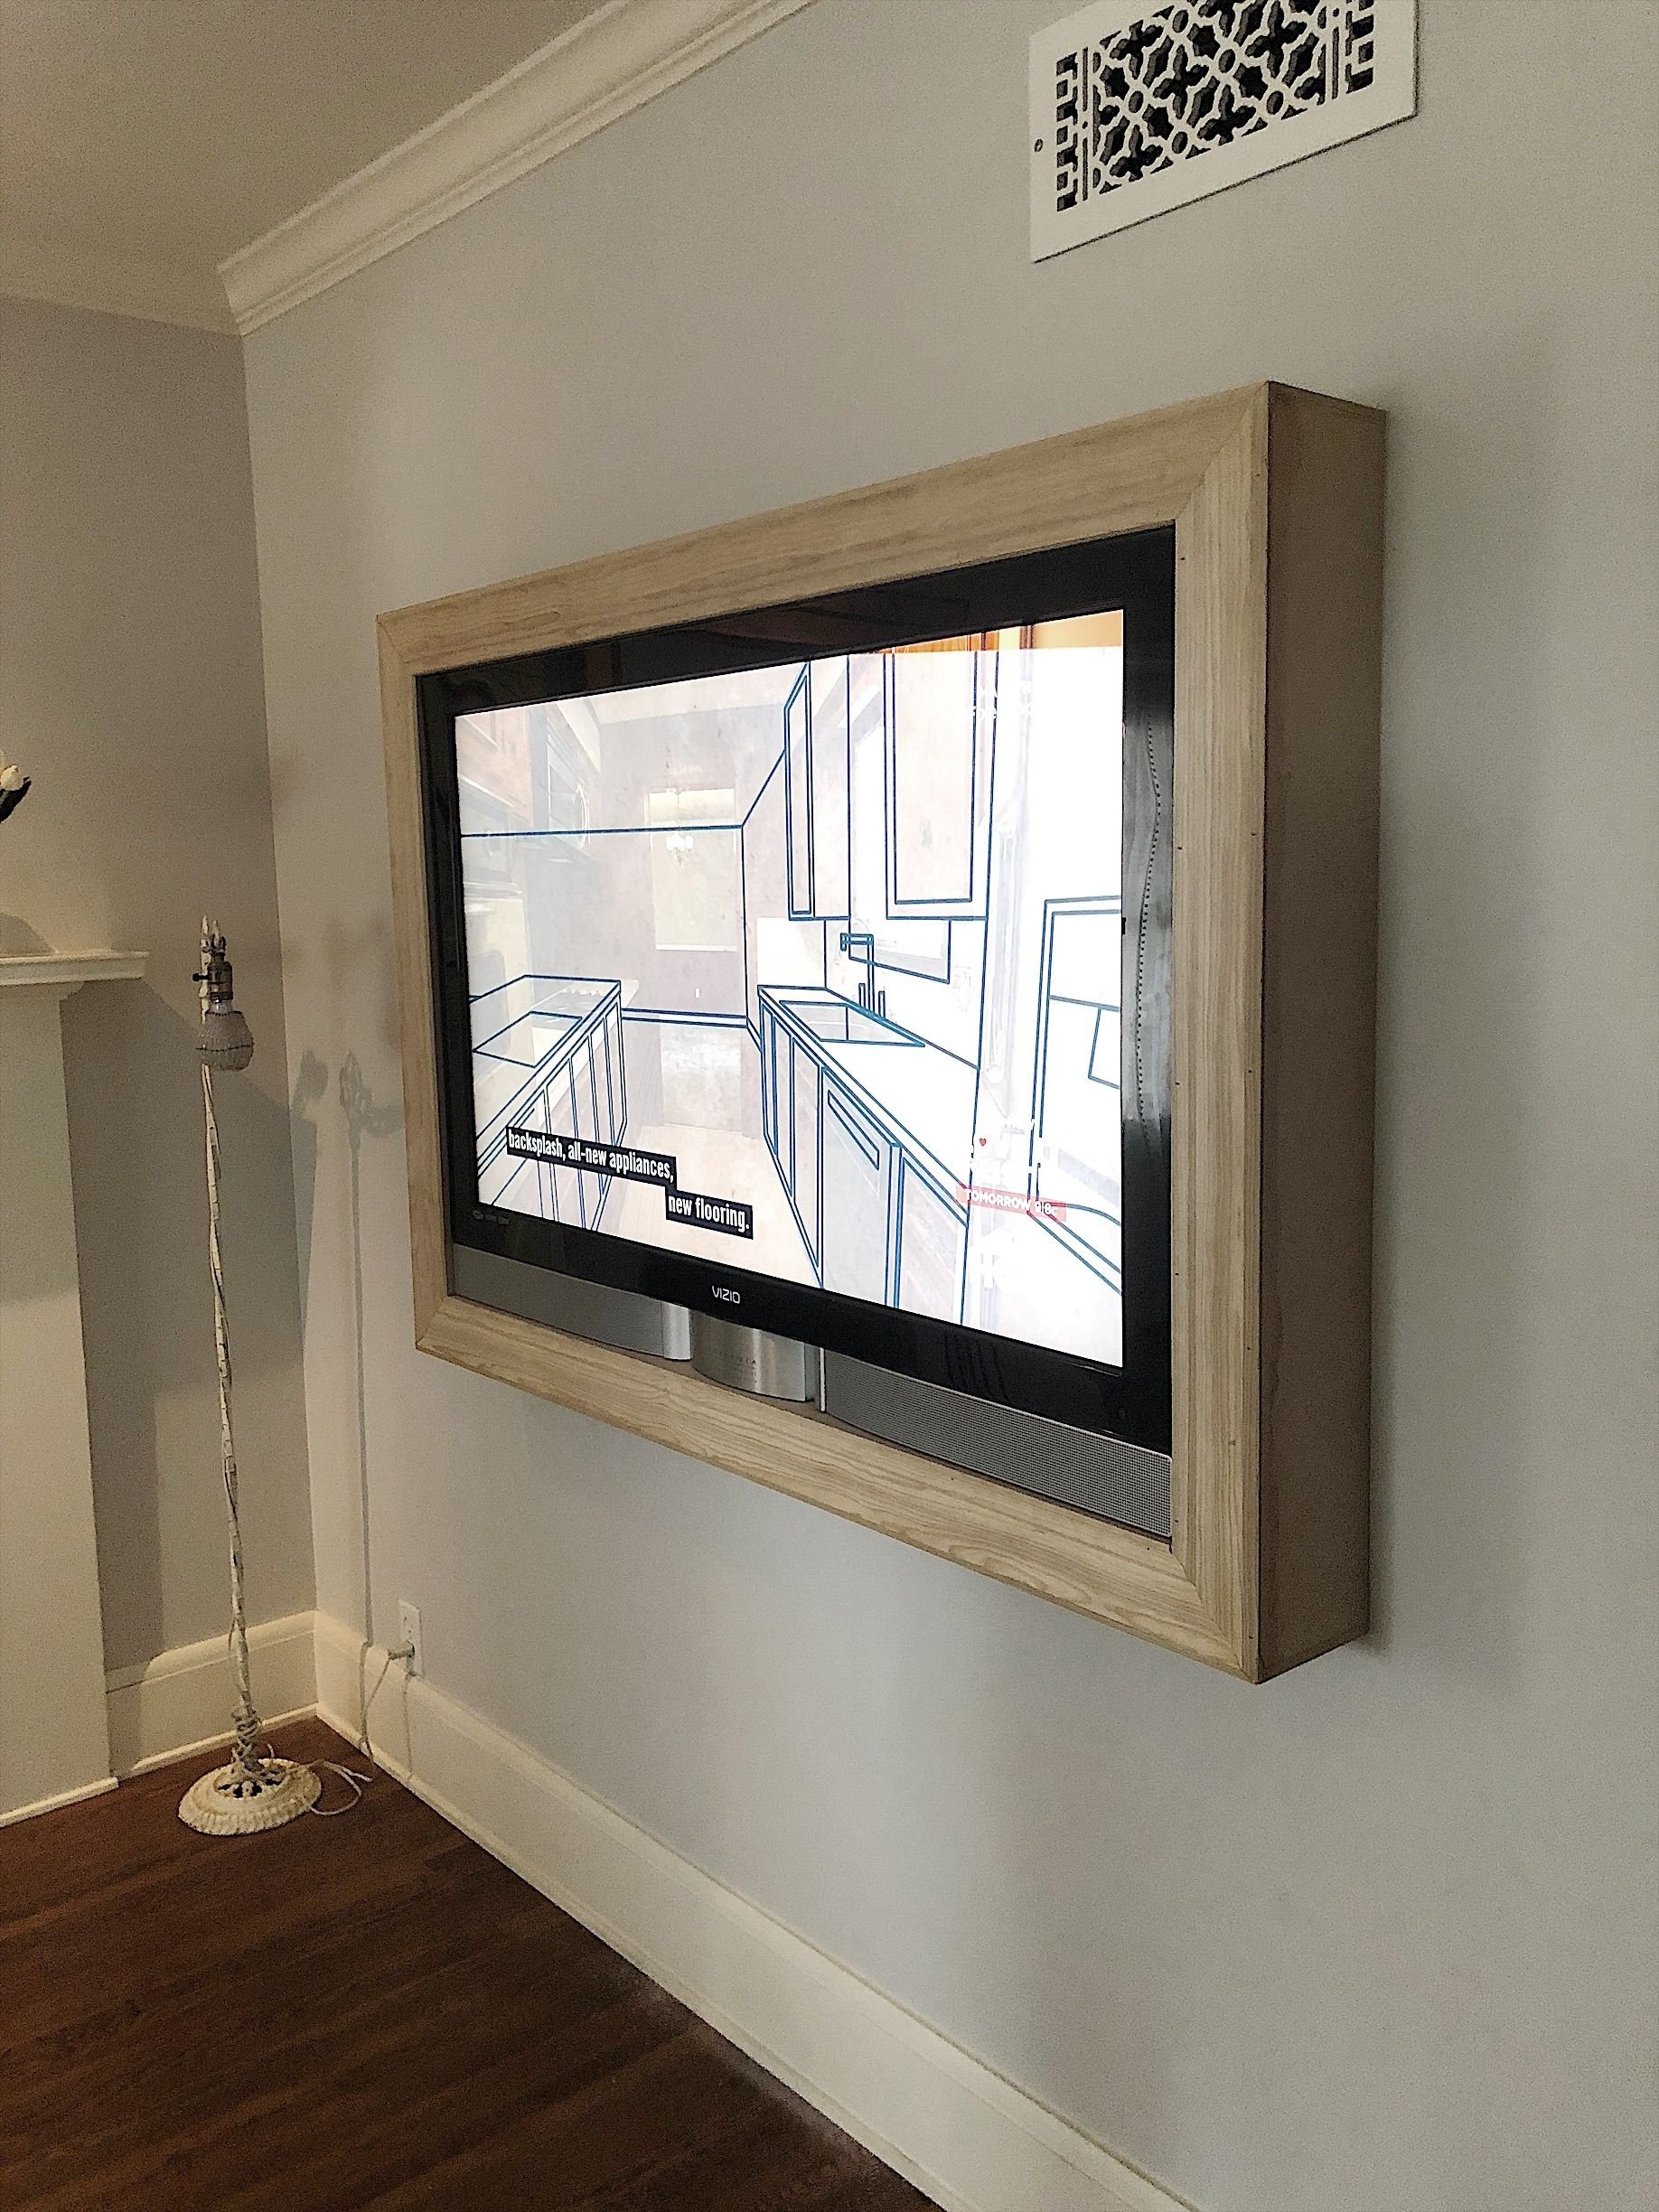 Five steps to build a frame for a wall mounted tv